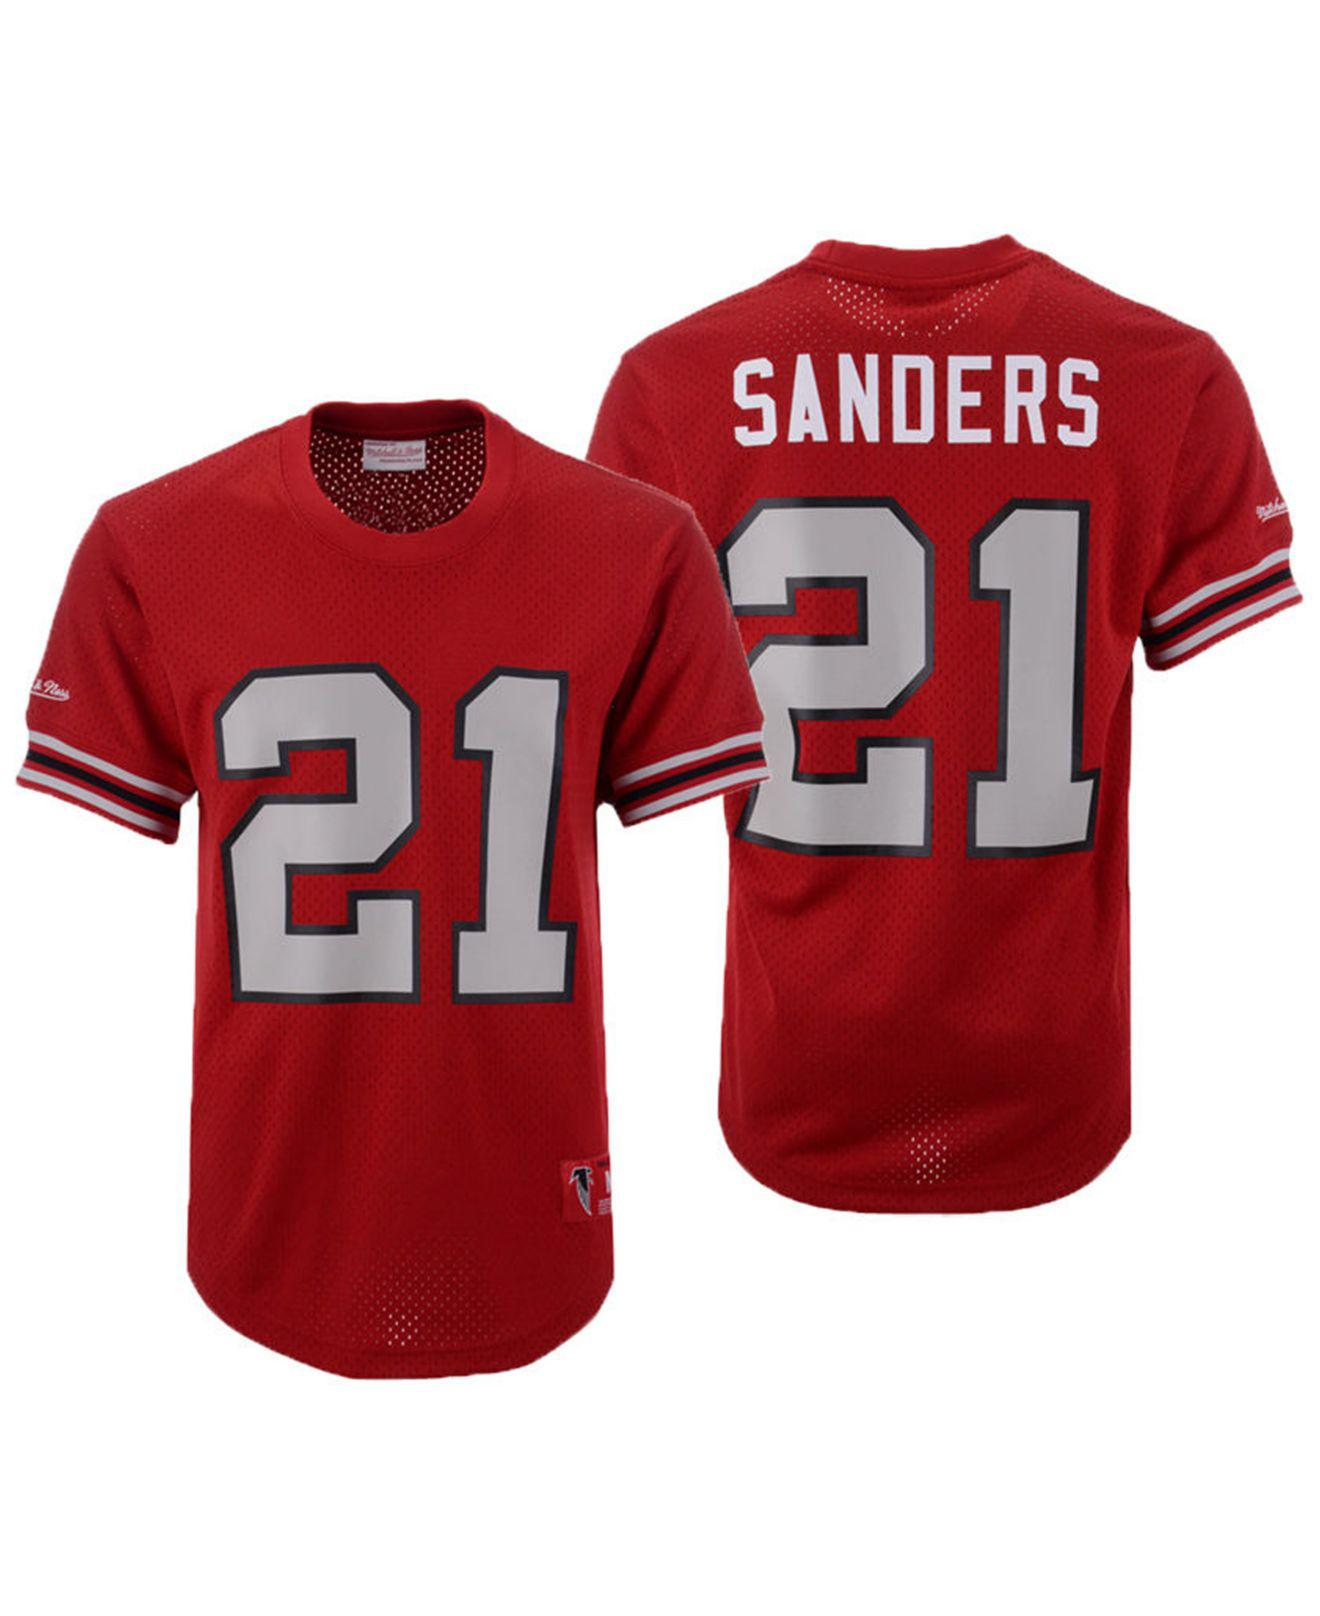 newest ced60 00c8f Men's Red Deion Sanders Atlanta Falcons Mesh Name And Number Crewneck Jersey